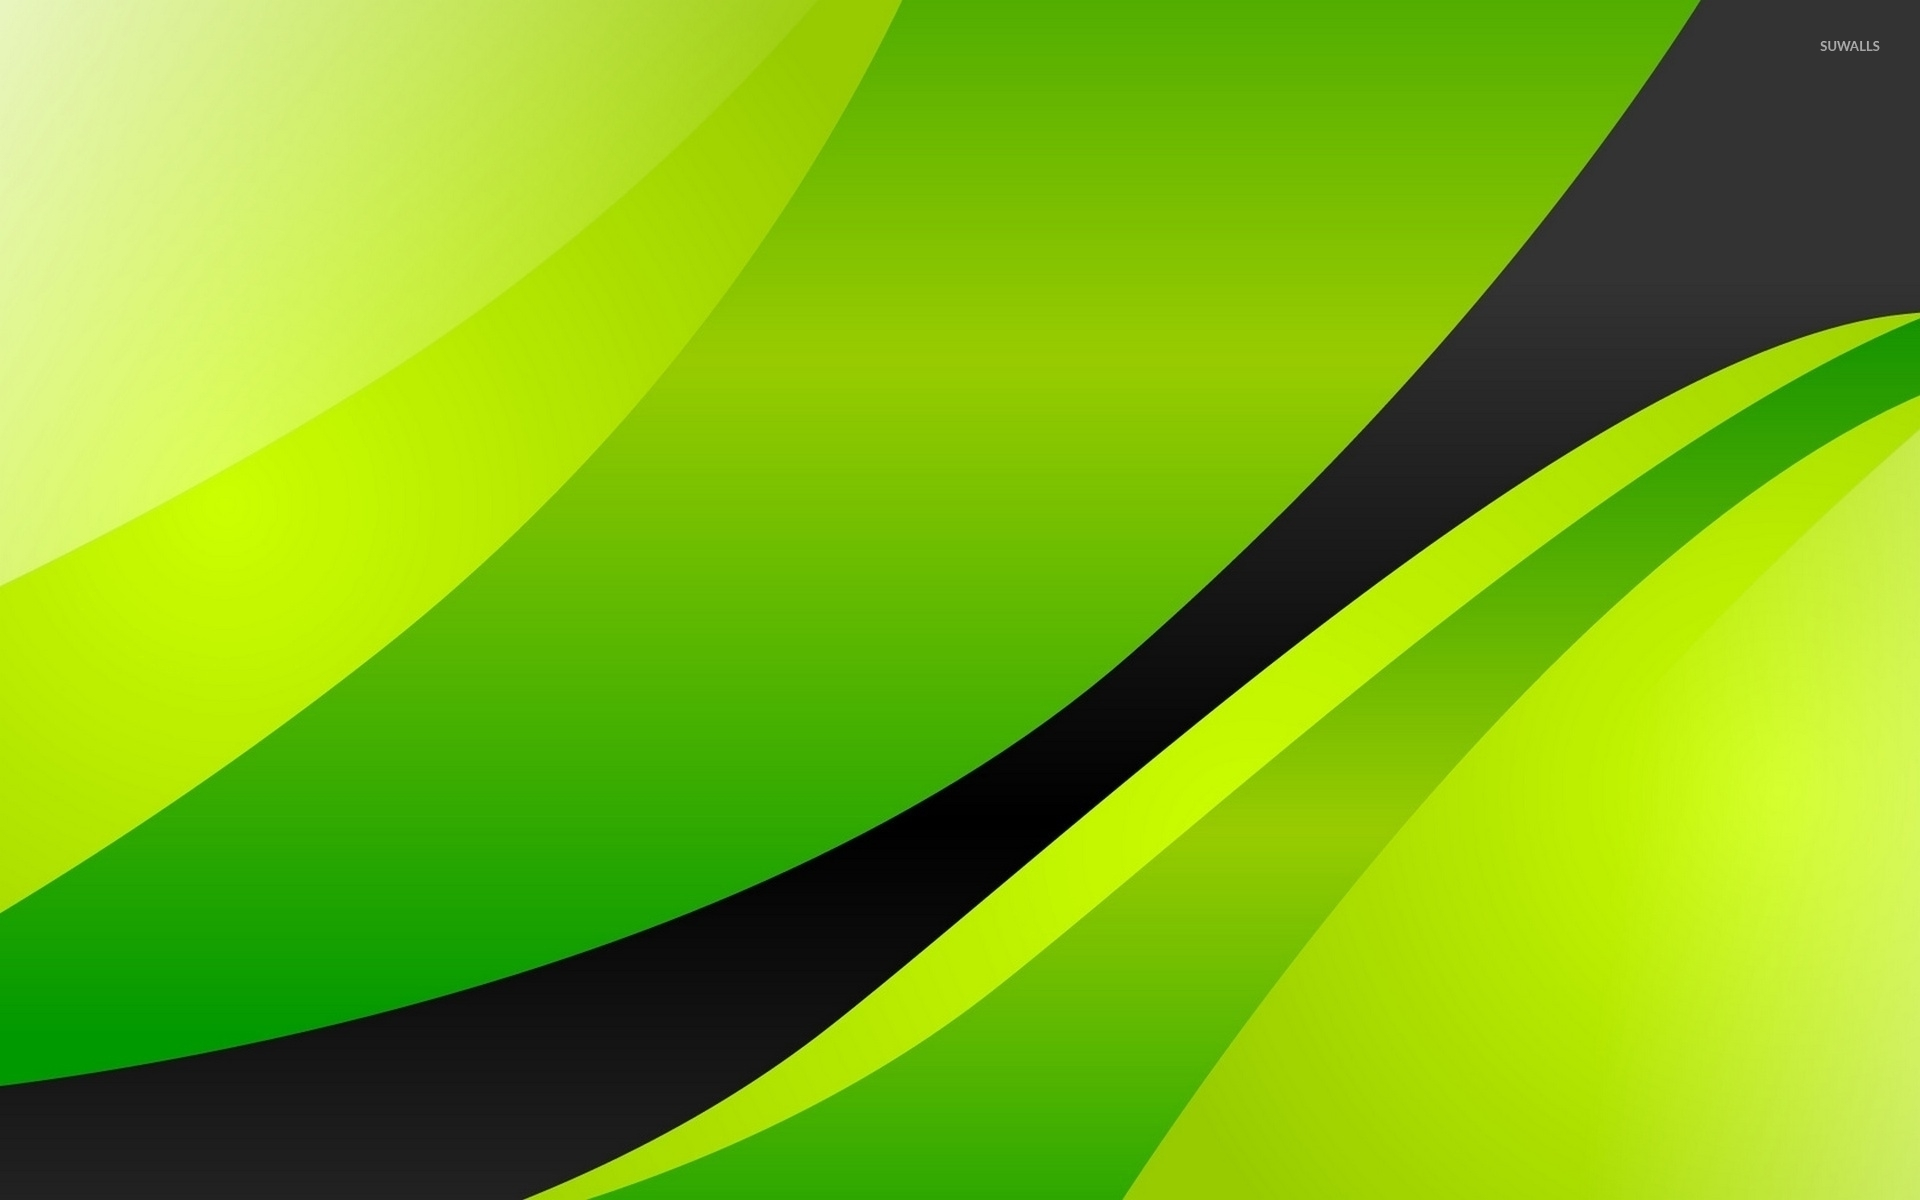 Black shape surrounded by green stripes wallpaper Abstract